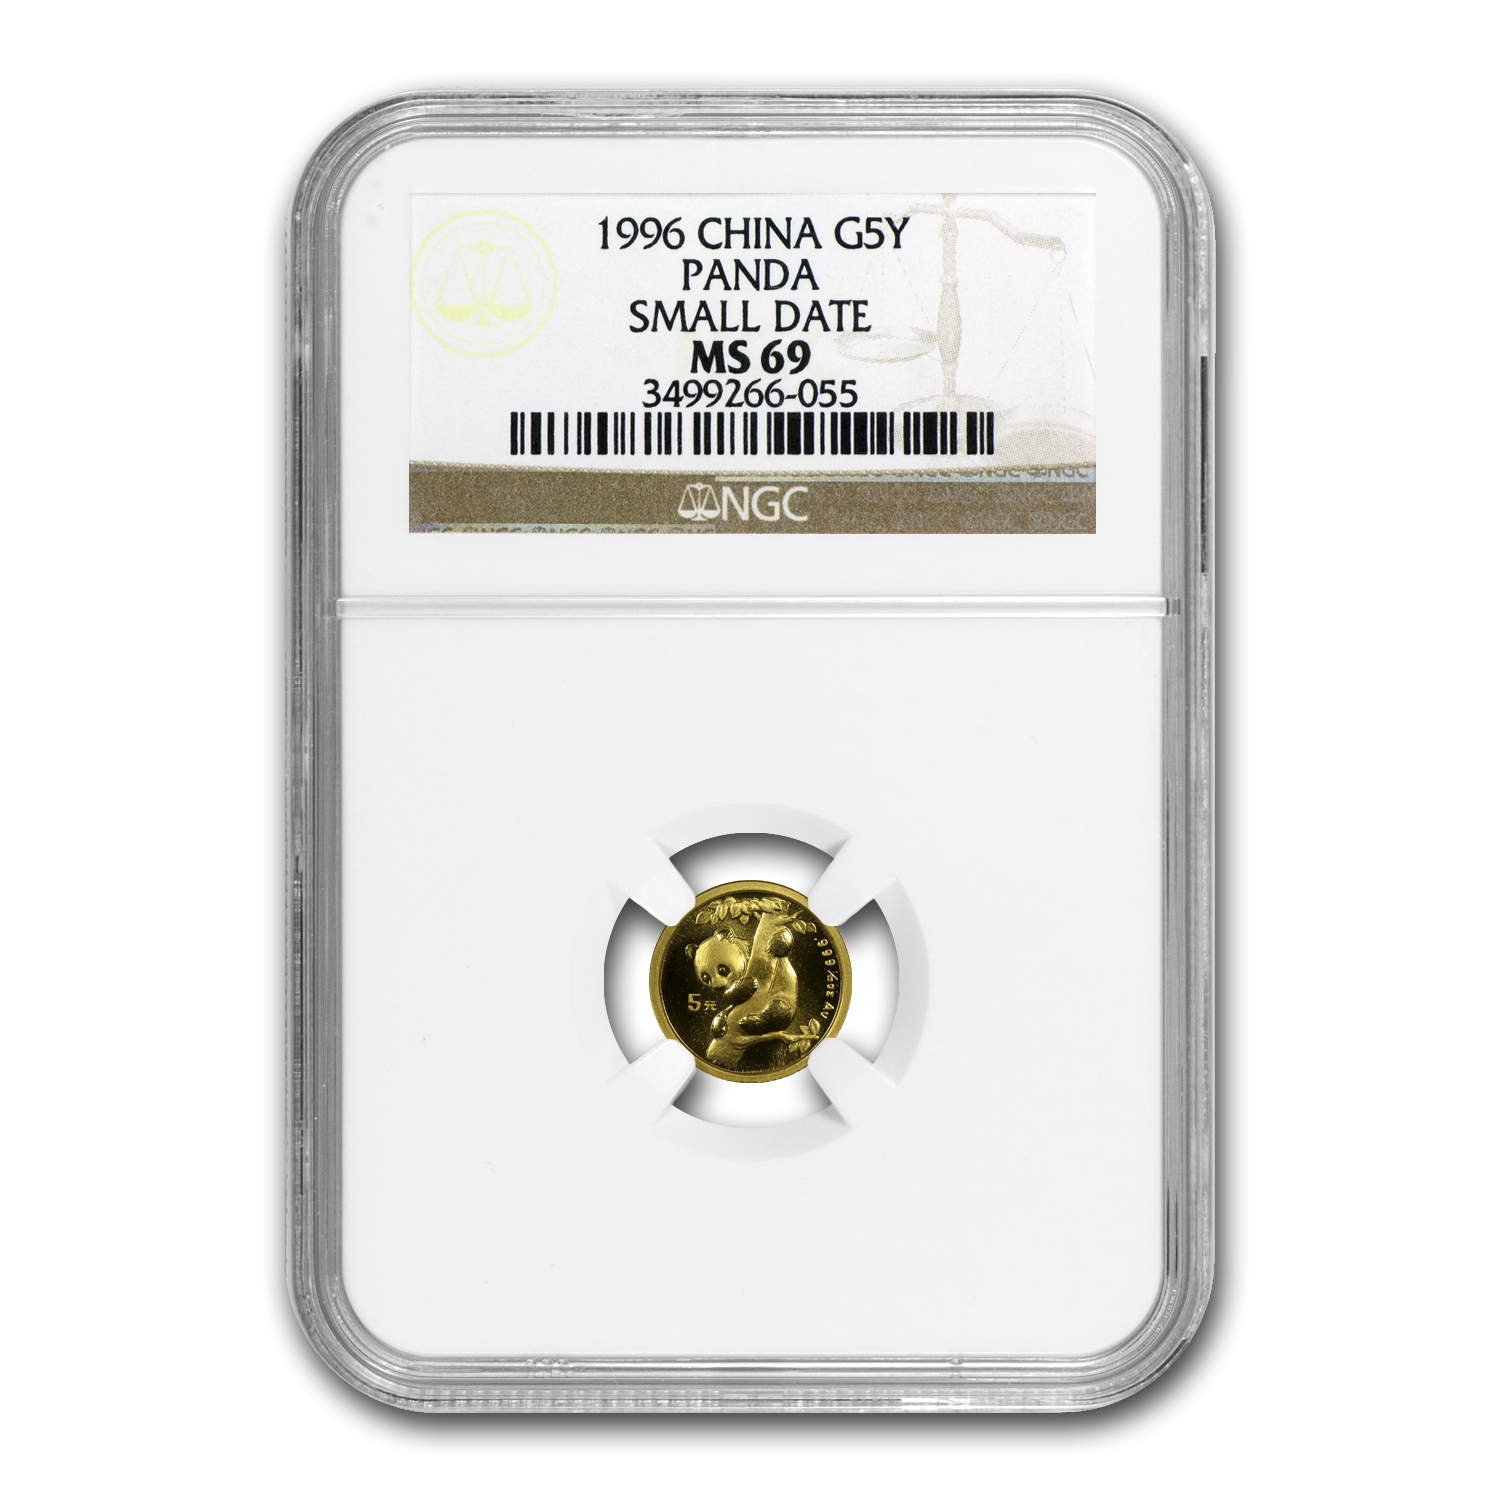 1996 China 1/20 oz Gold Panda Small Date MS-69 NGC